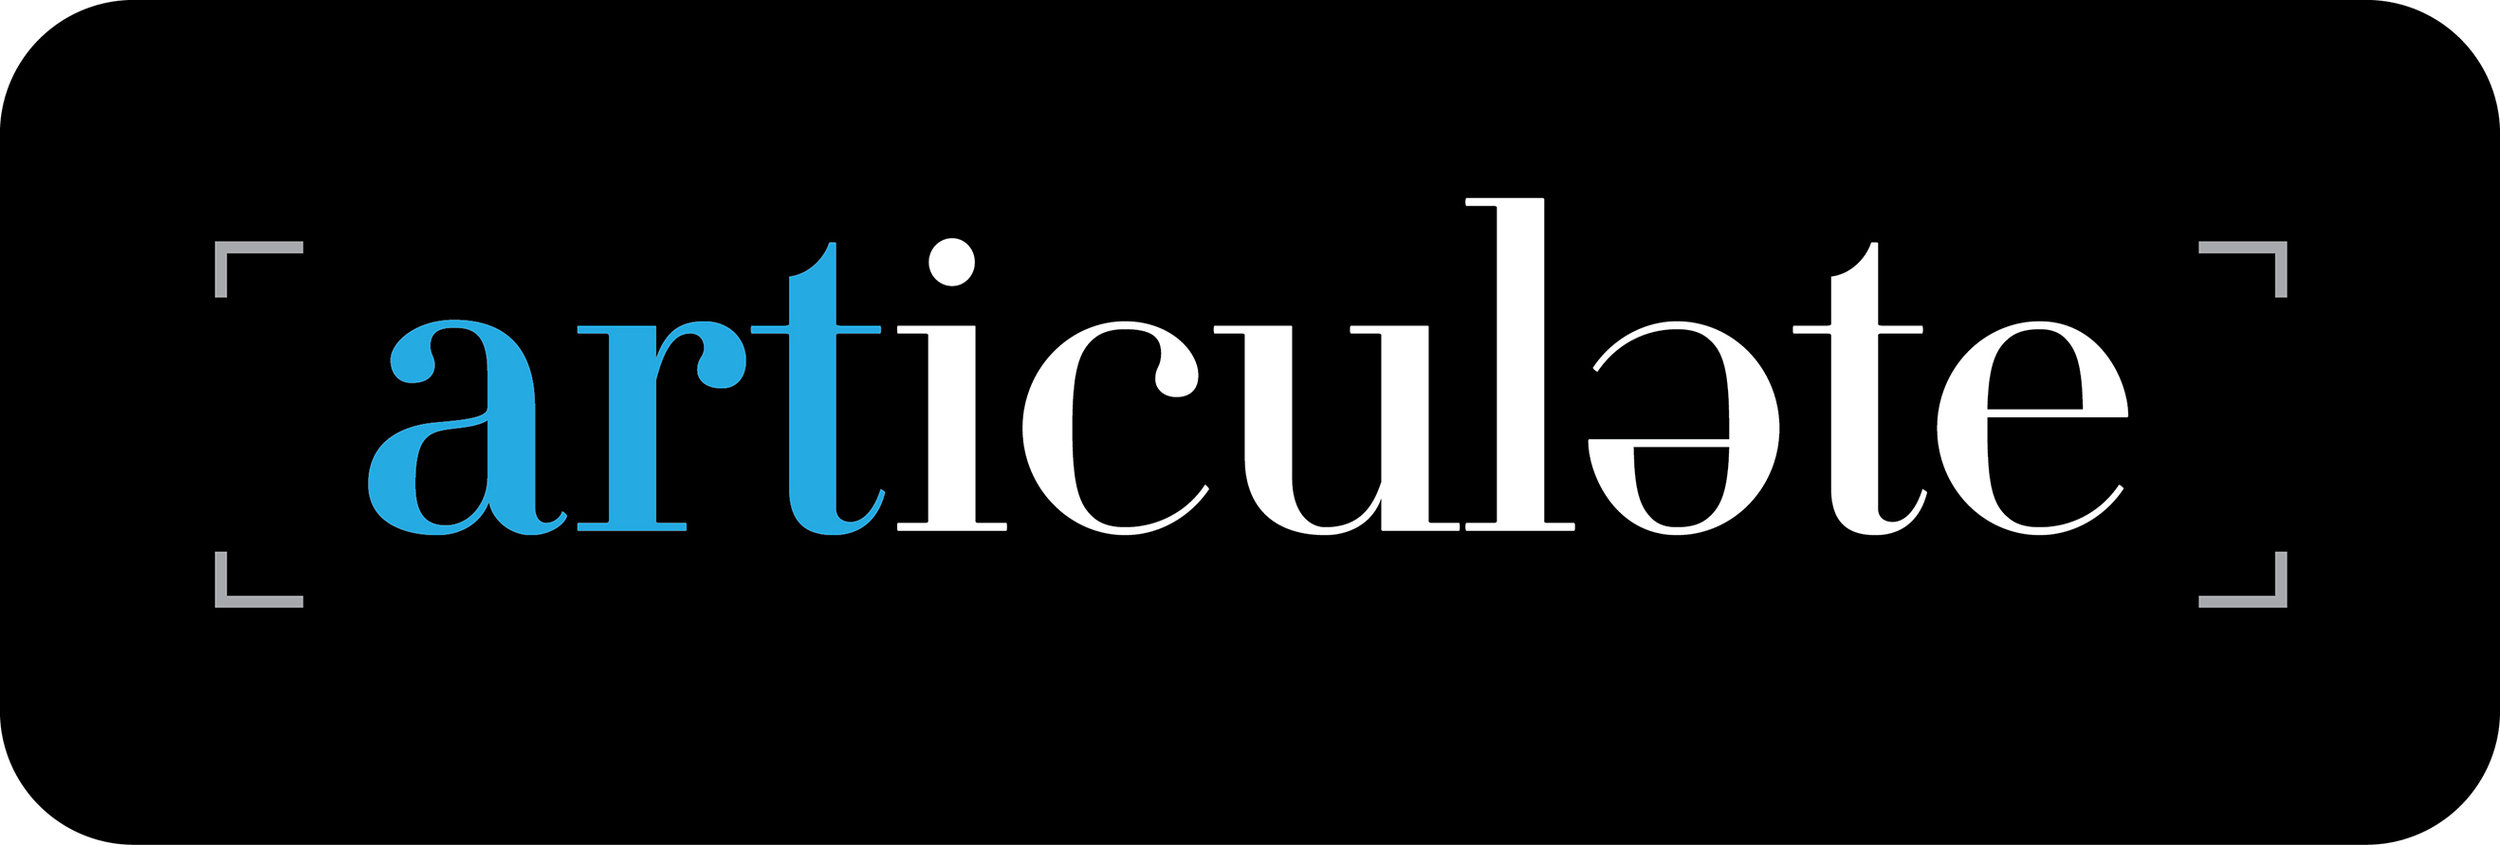 Articulate Logo (Inverted Colors)